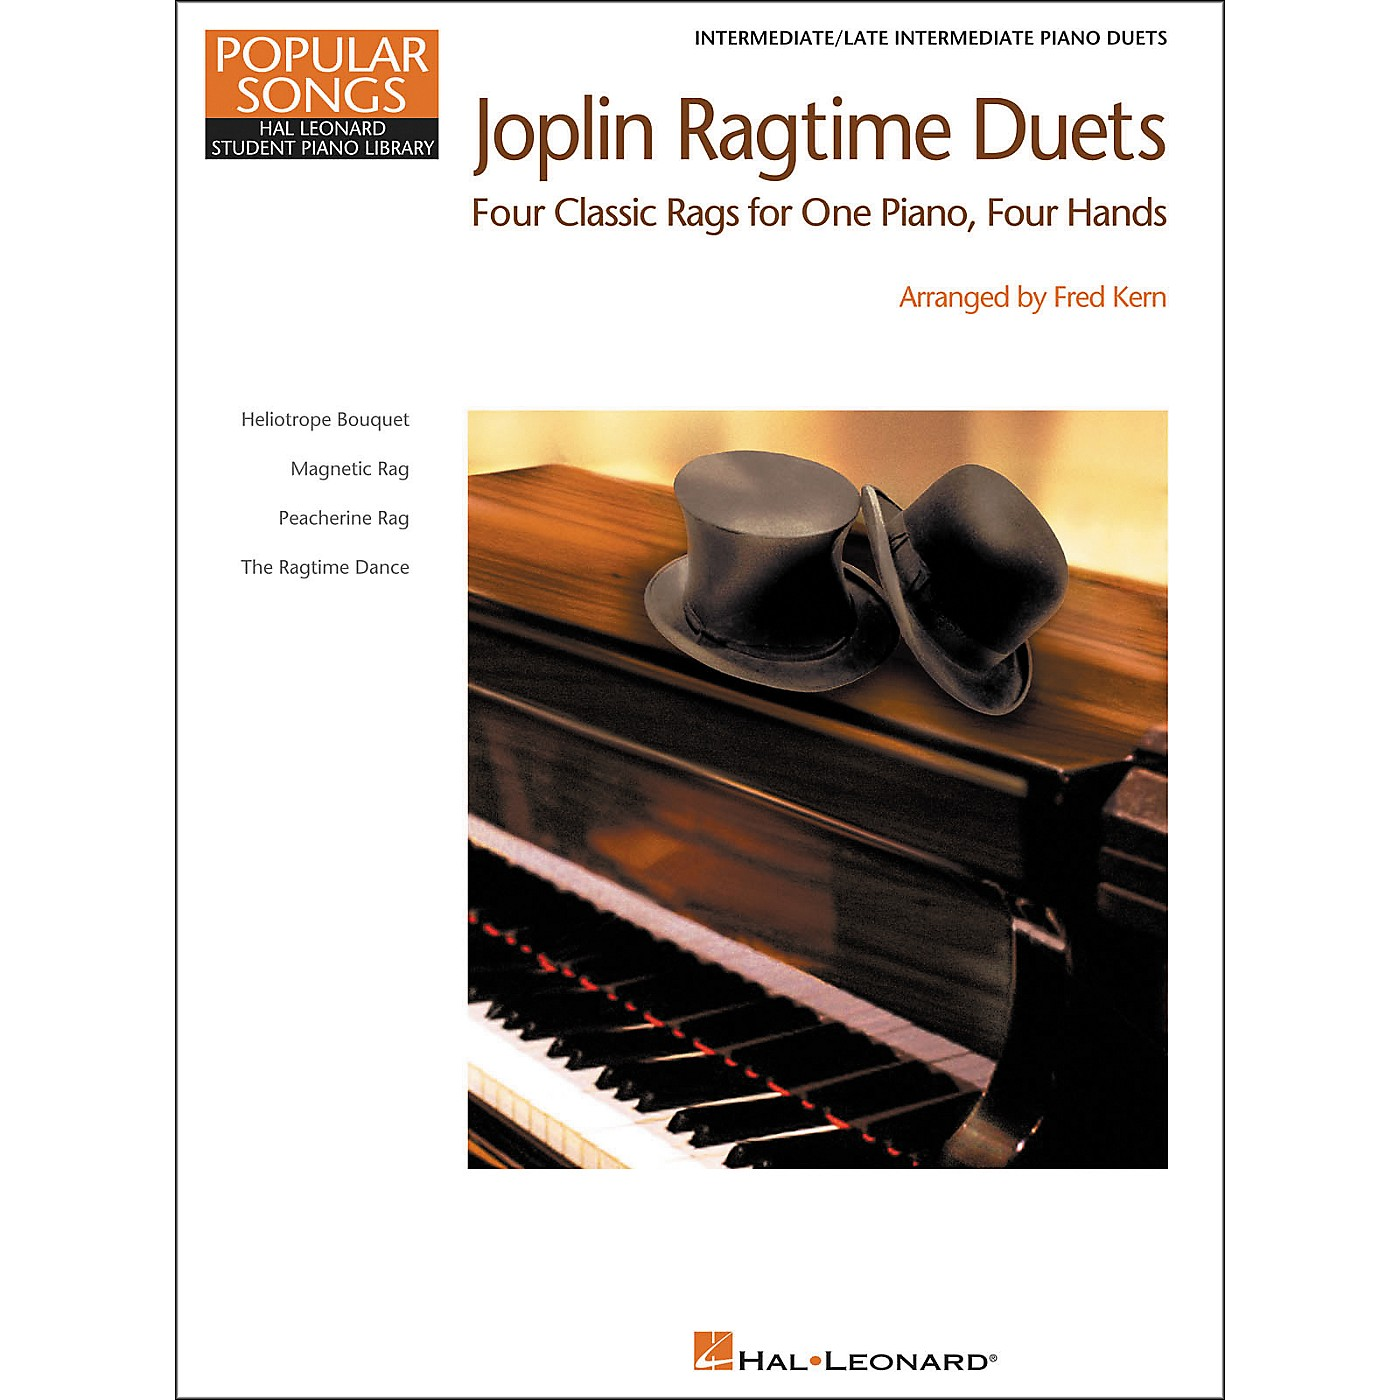 Hal Leonard Joplin Ragtime Duets - Popular Songs Level 5 Intermediate/Late Intermediate Hal Leonard Student Piano Library by Fred Kern thumbnail